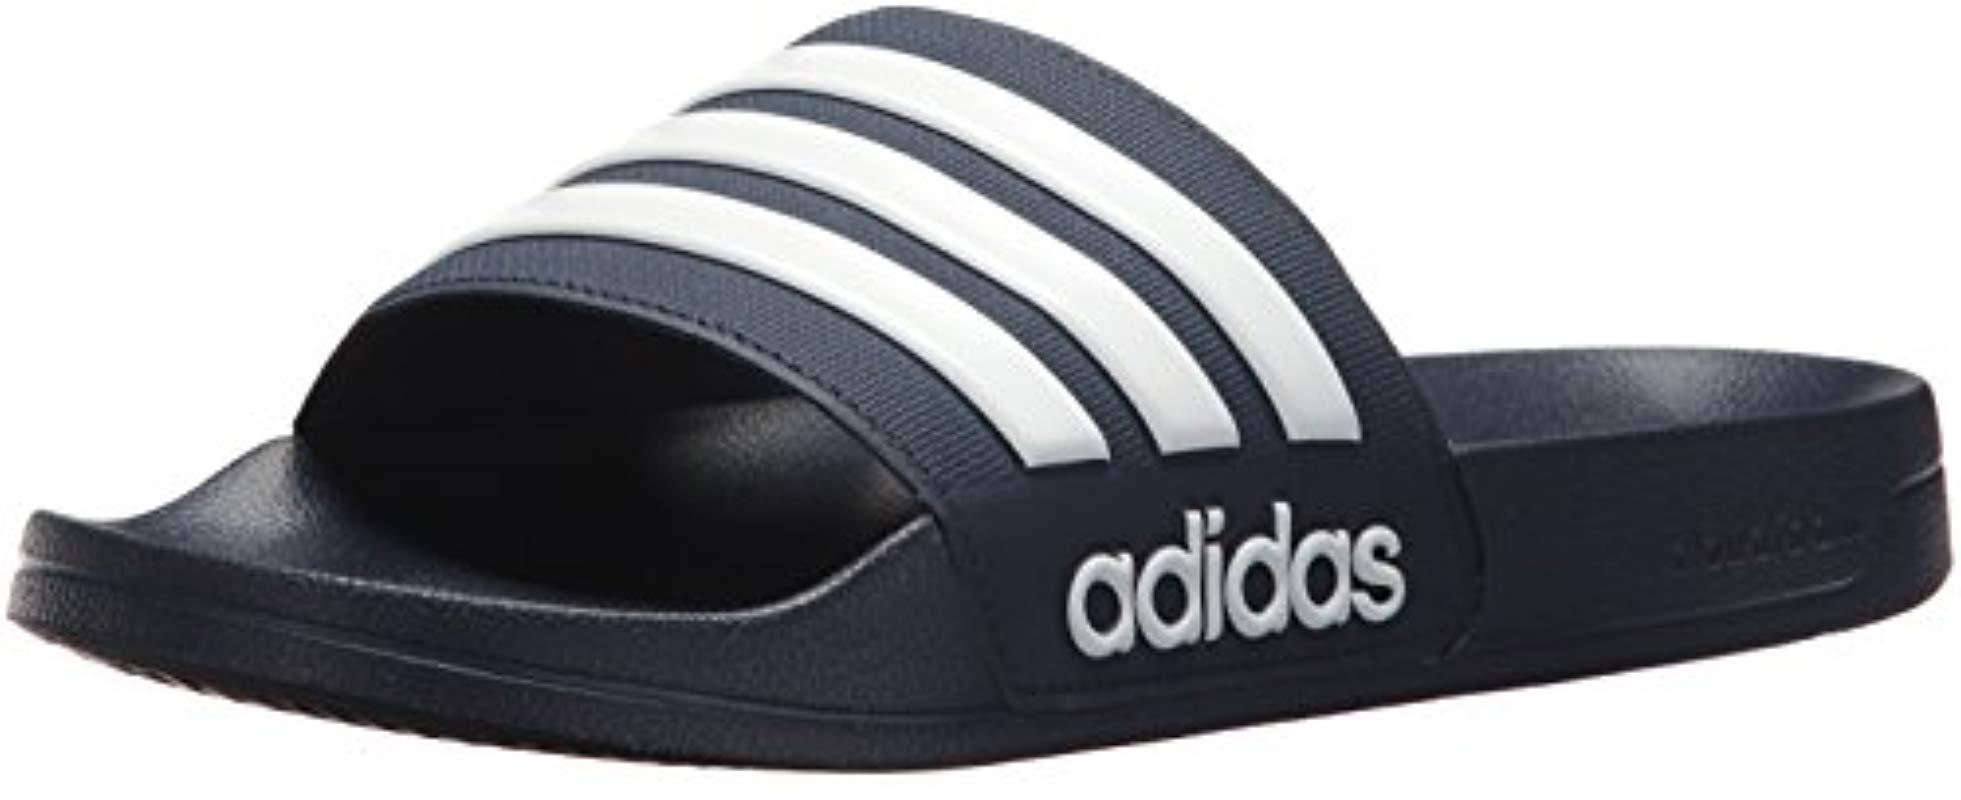 7d908c252bc7a adidas Adilette Shower Slide Sandal, White/collegiate Navy, 8 M Us ...